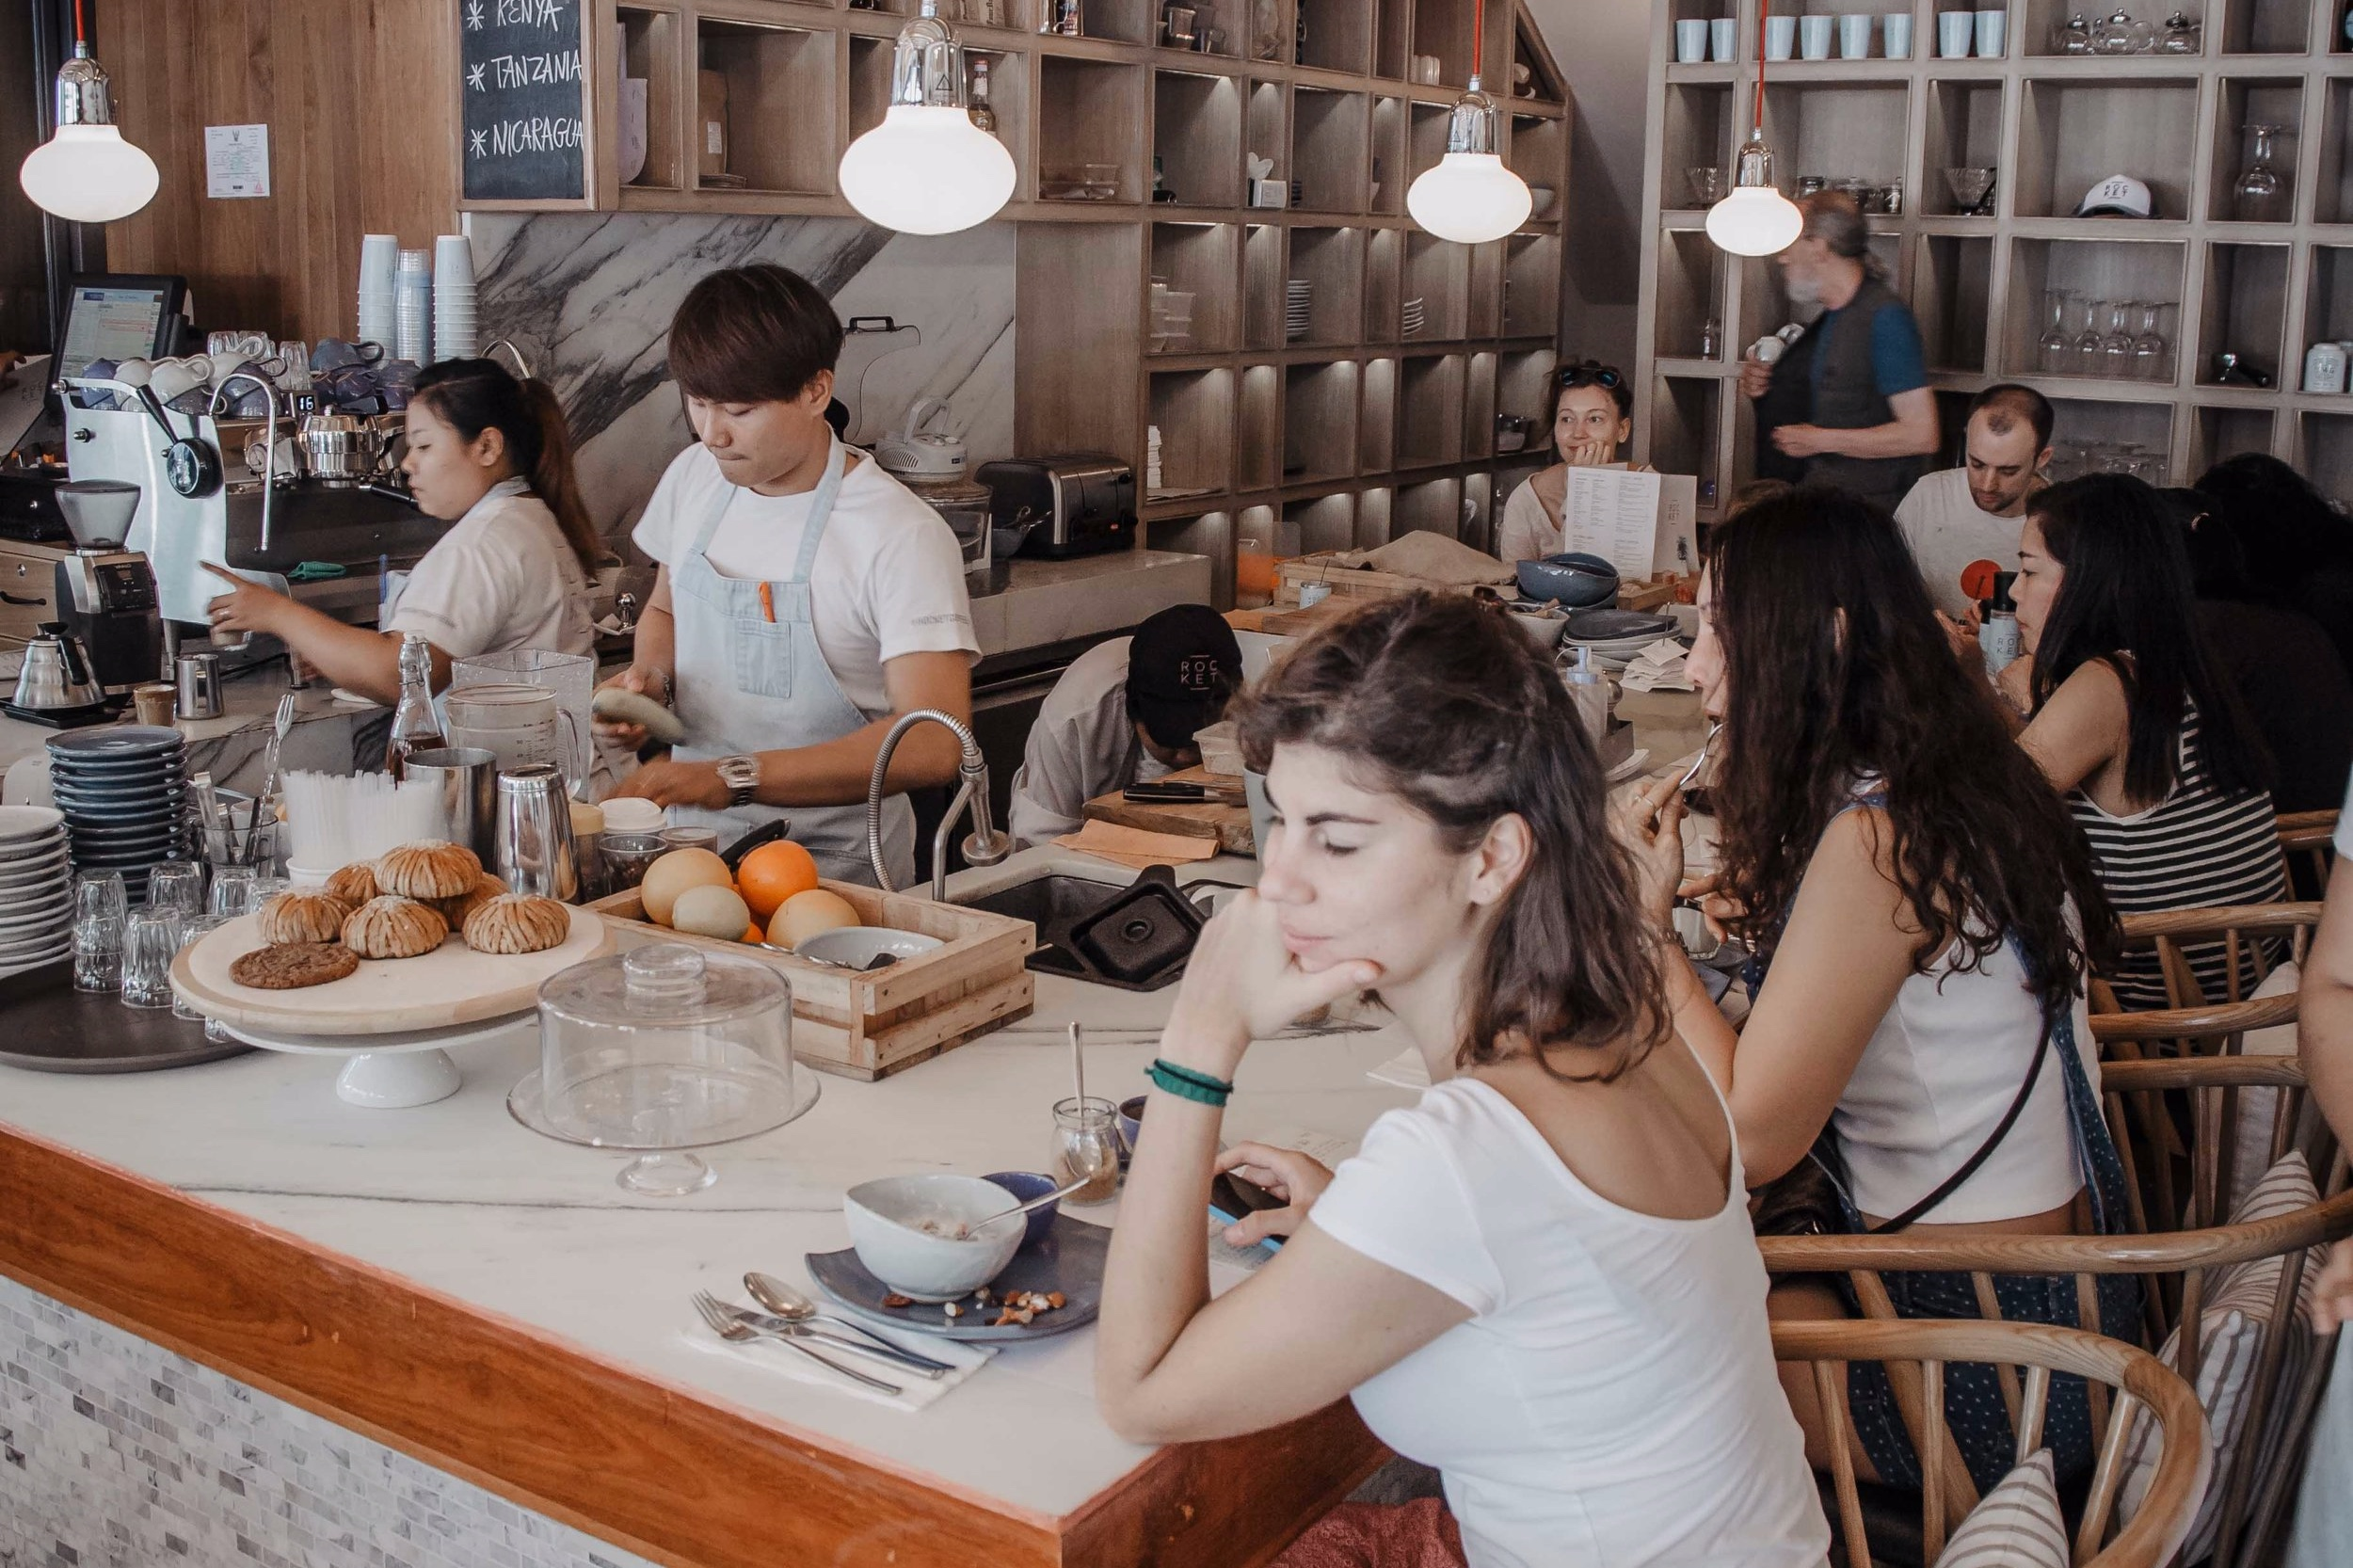 rocket+sathorn+specialty+coffee+shop+bangkok